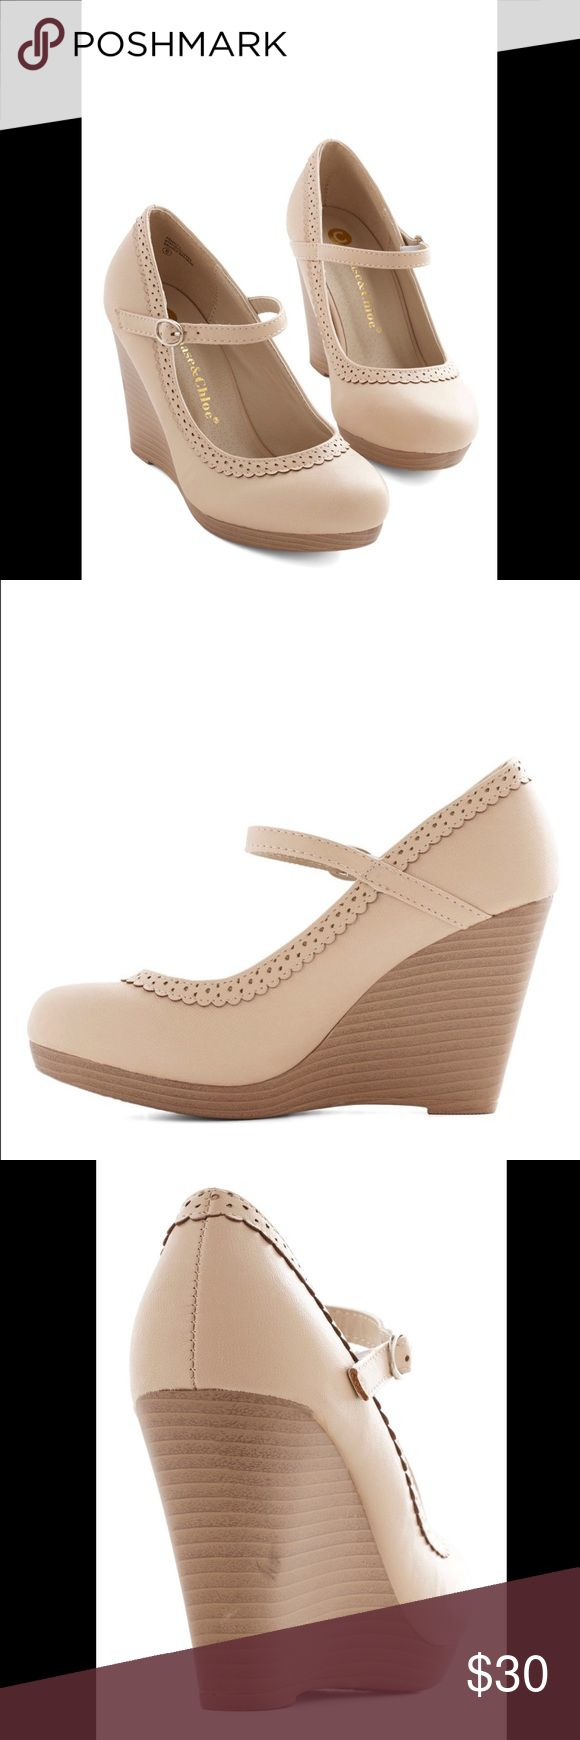 Chase & Chloe Cream Wedges Cute and comfy wedges from Chase & Chloe! The cream color matches with everything, and they pair well with dresses or a pair of jeans. These wedges are a size 8, and rarely worn in great condition! Chase & Chloe Shoes Wedges